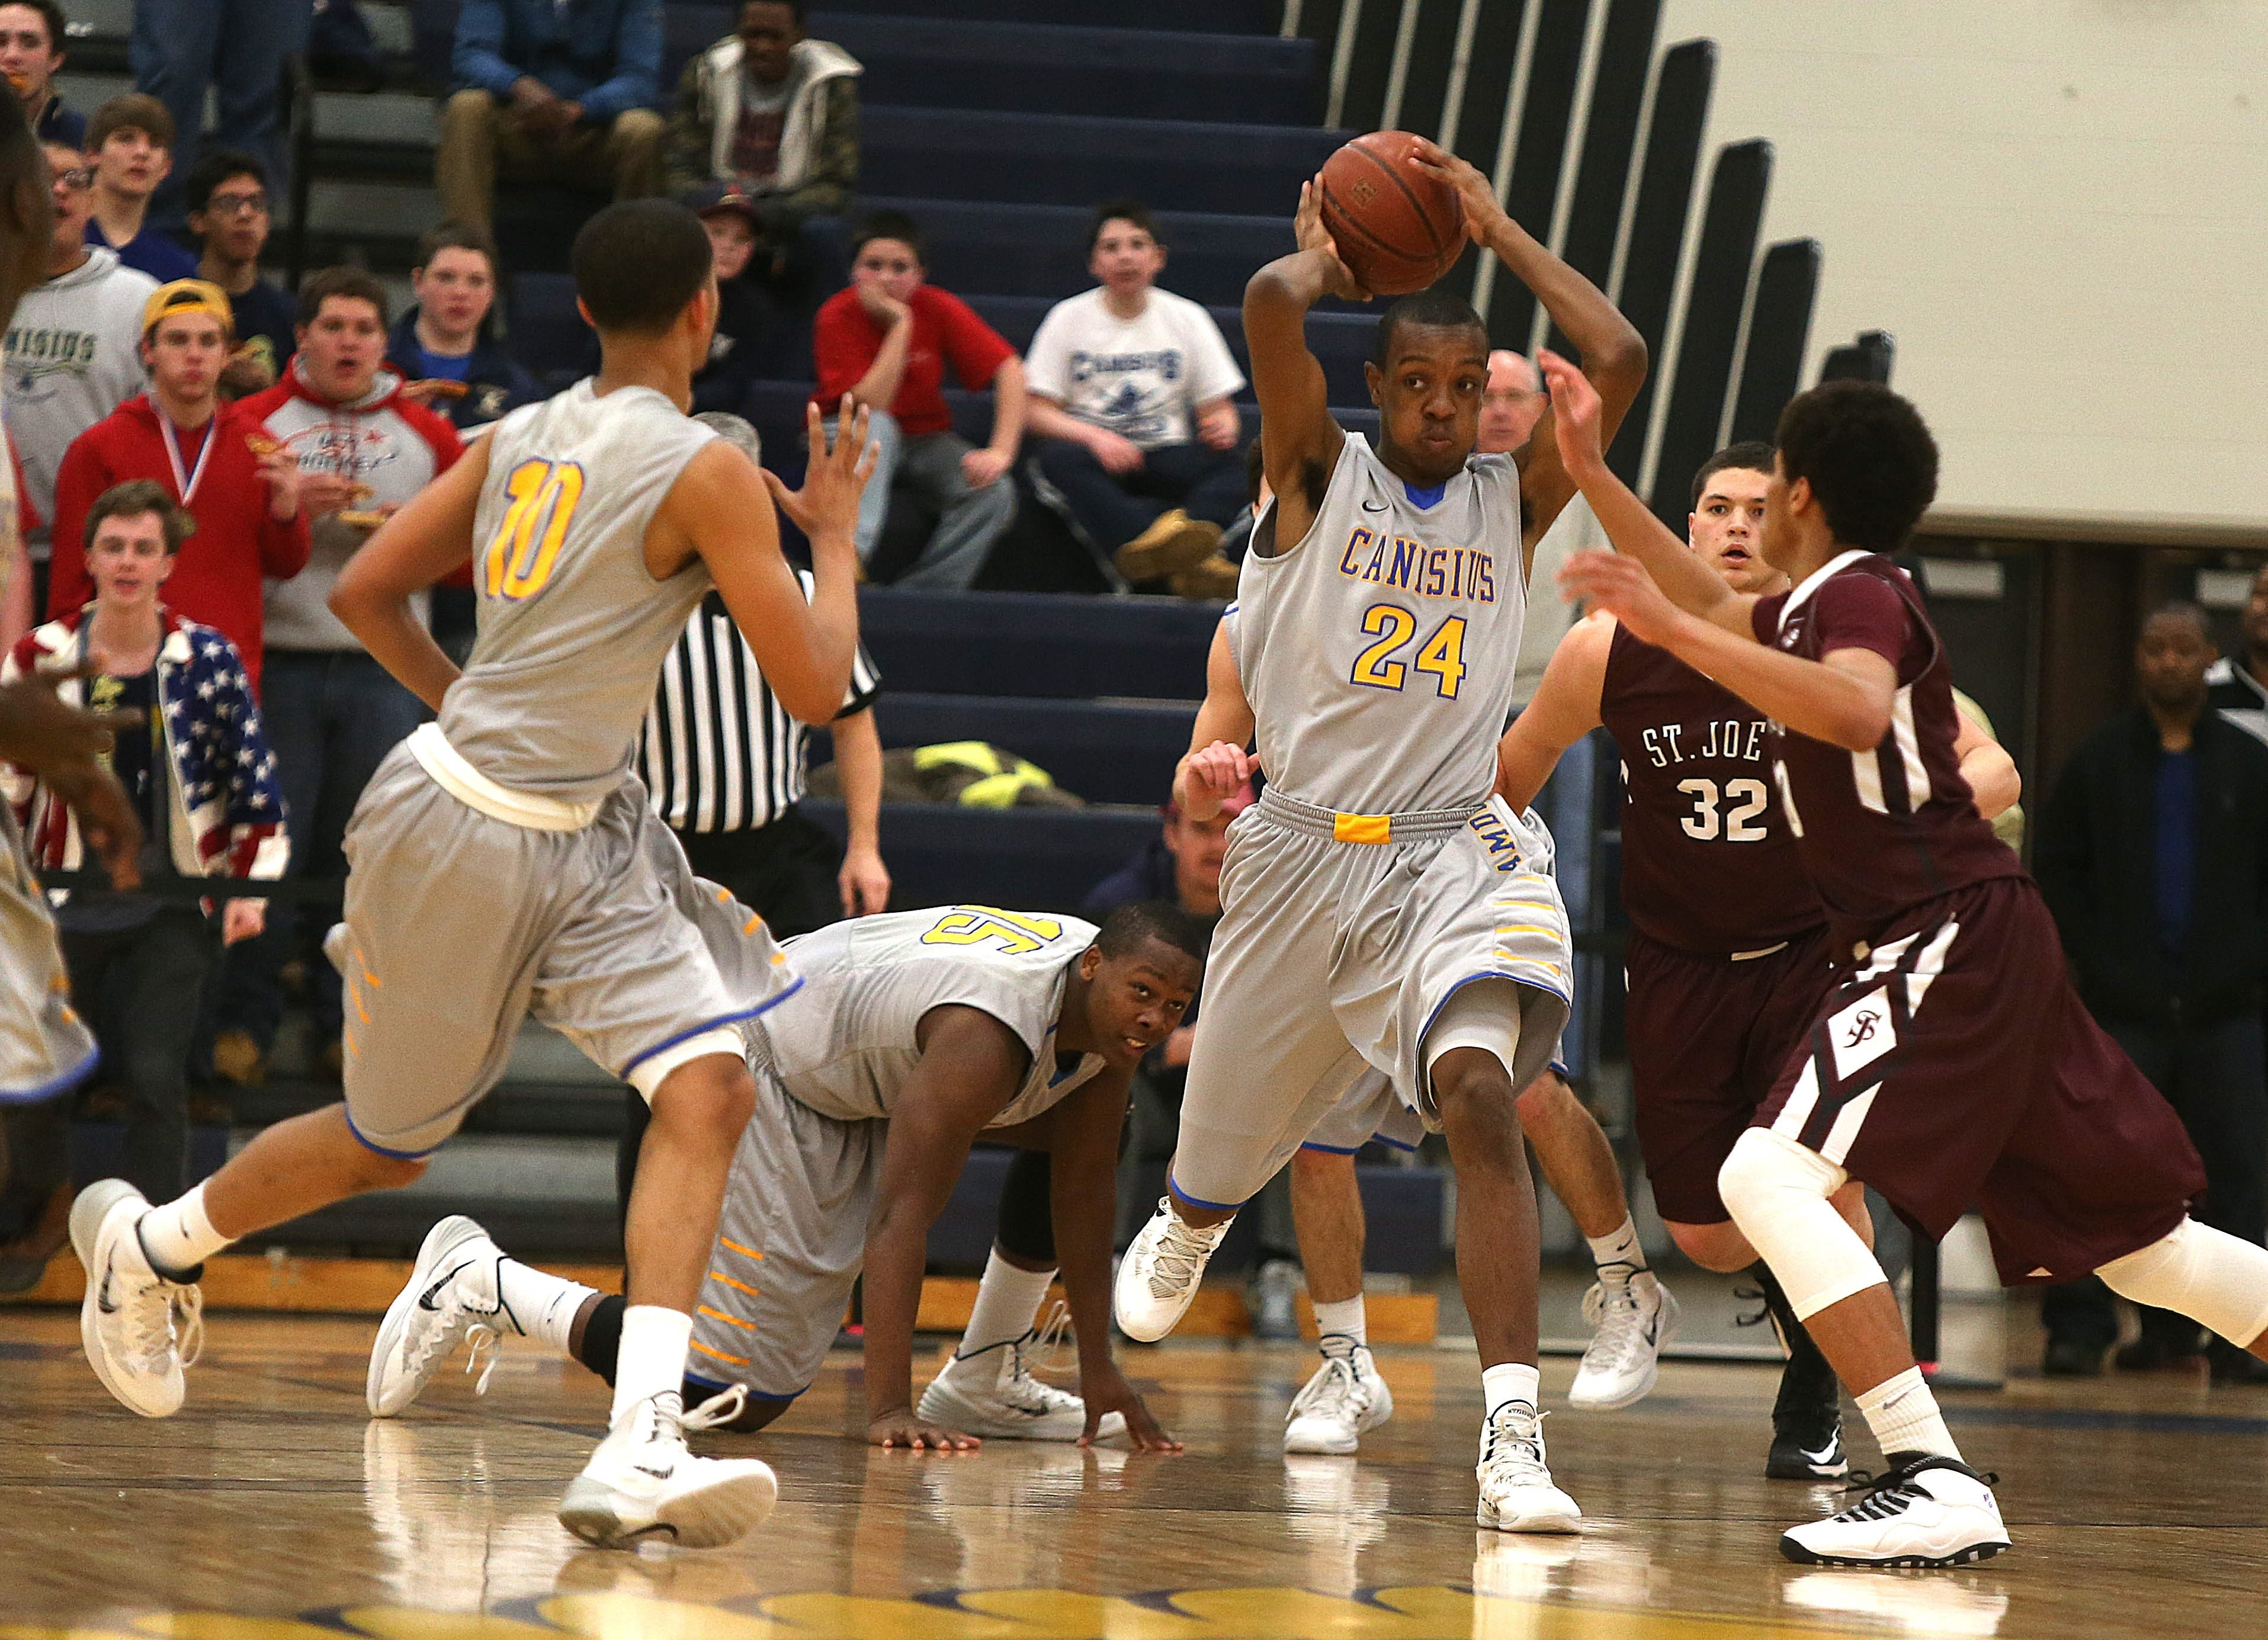 Stafford Trueheart (24) and Howard Washington (10) are star performers for a team that has won a Canisius High record 22 games.